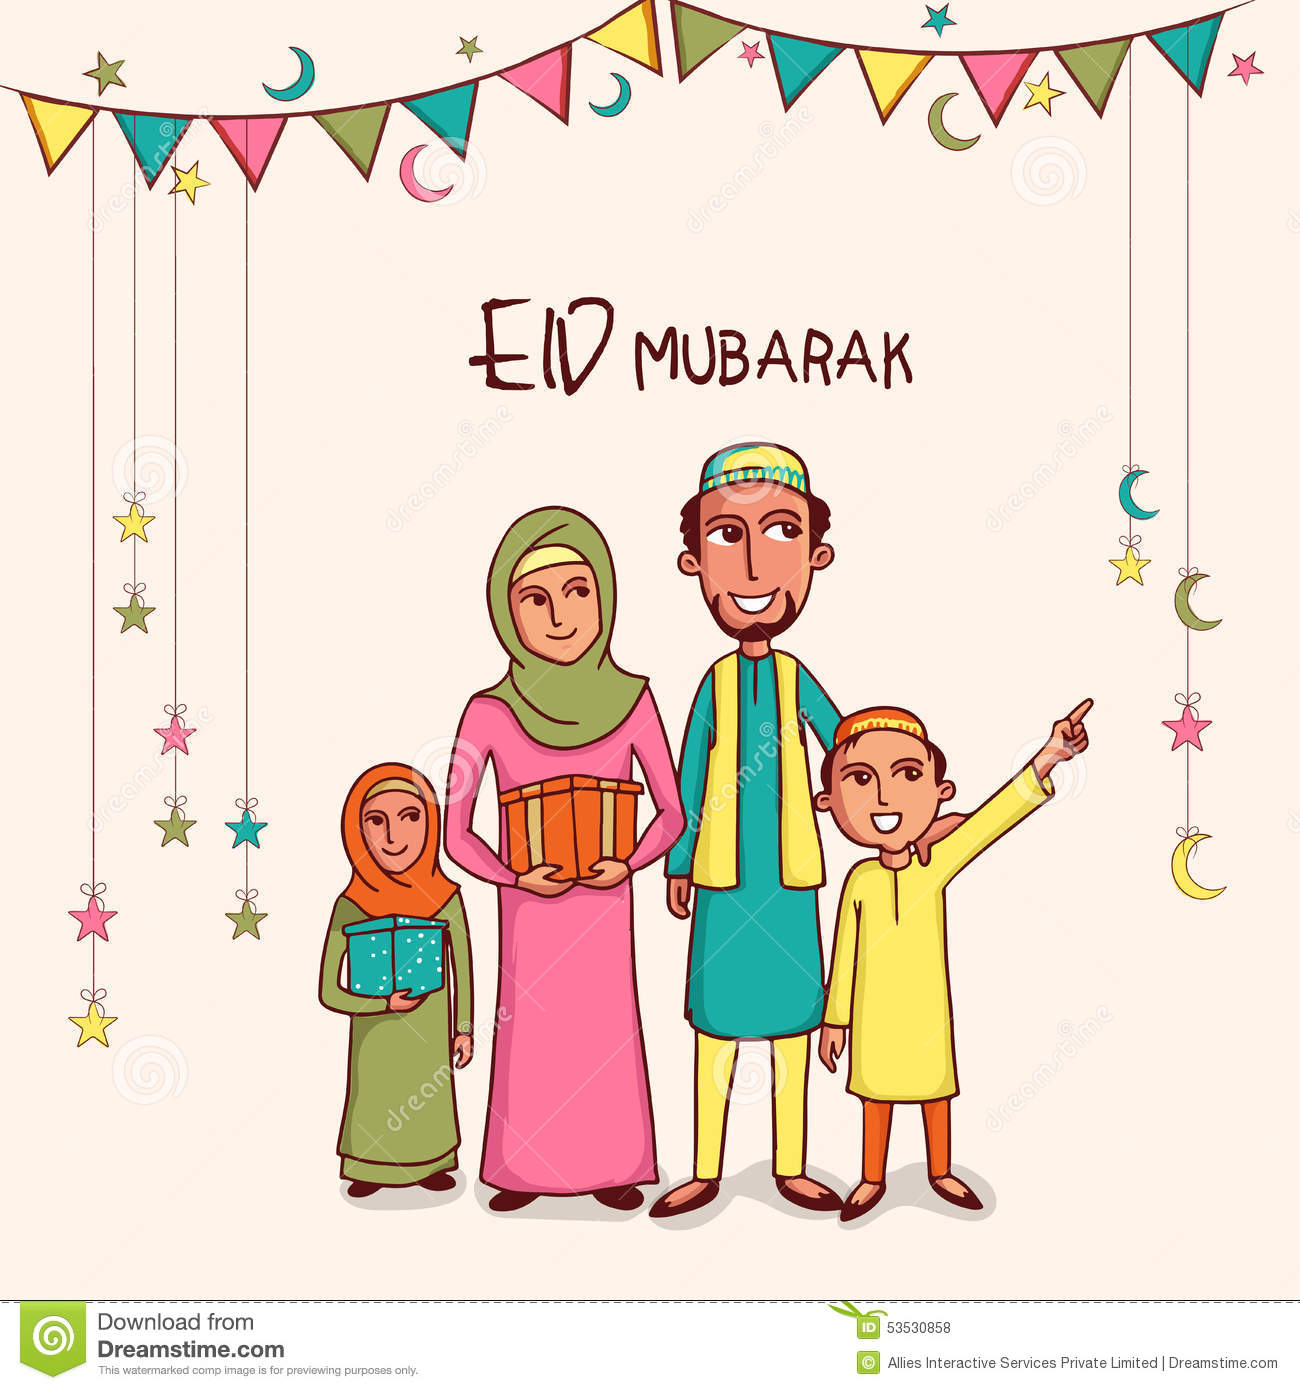 Cool Family Eid Al-Fitr Greeting - Eid-Mubarak-Wishes-for-family-2017%2B%25281%2529  You Should Have_258498 .jpg